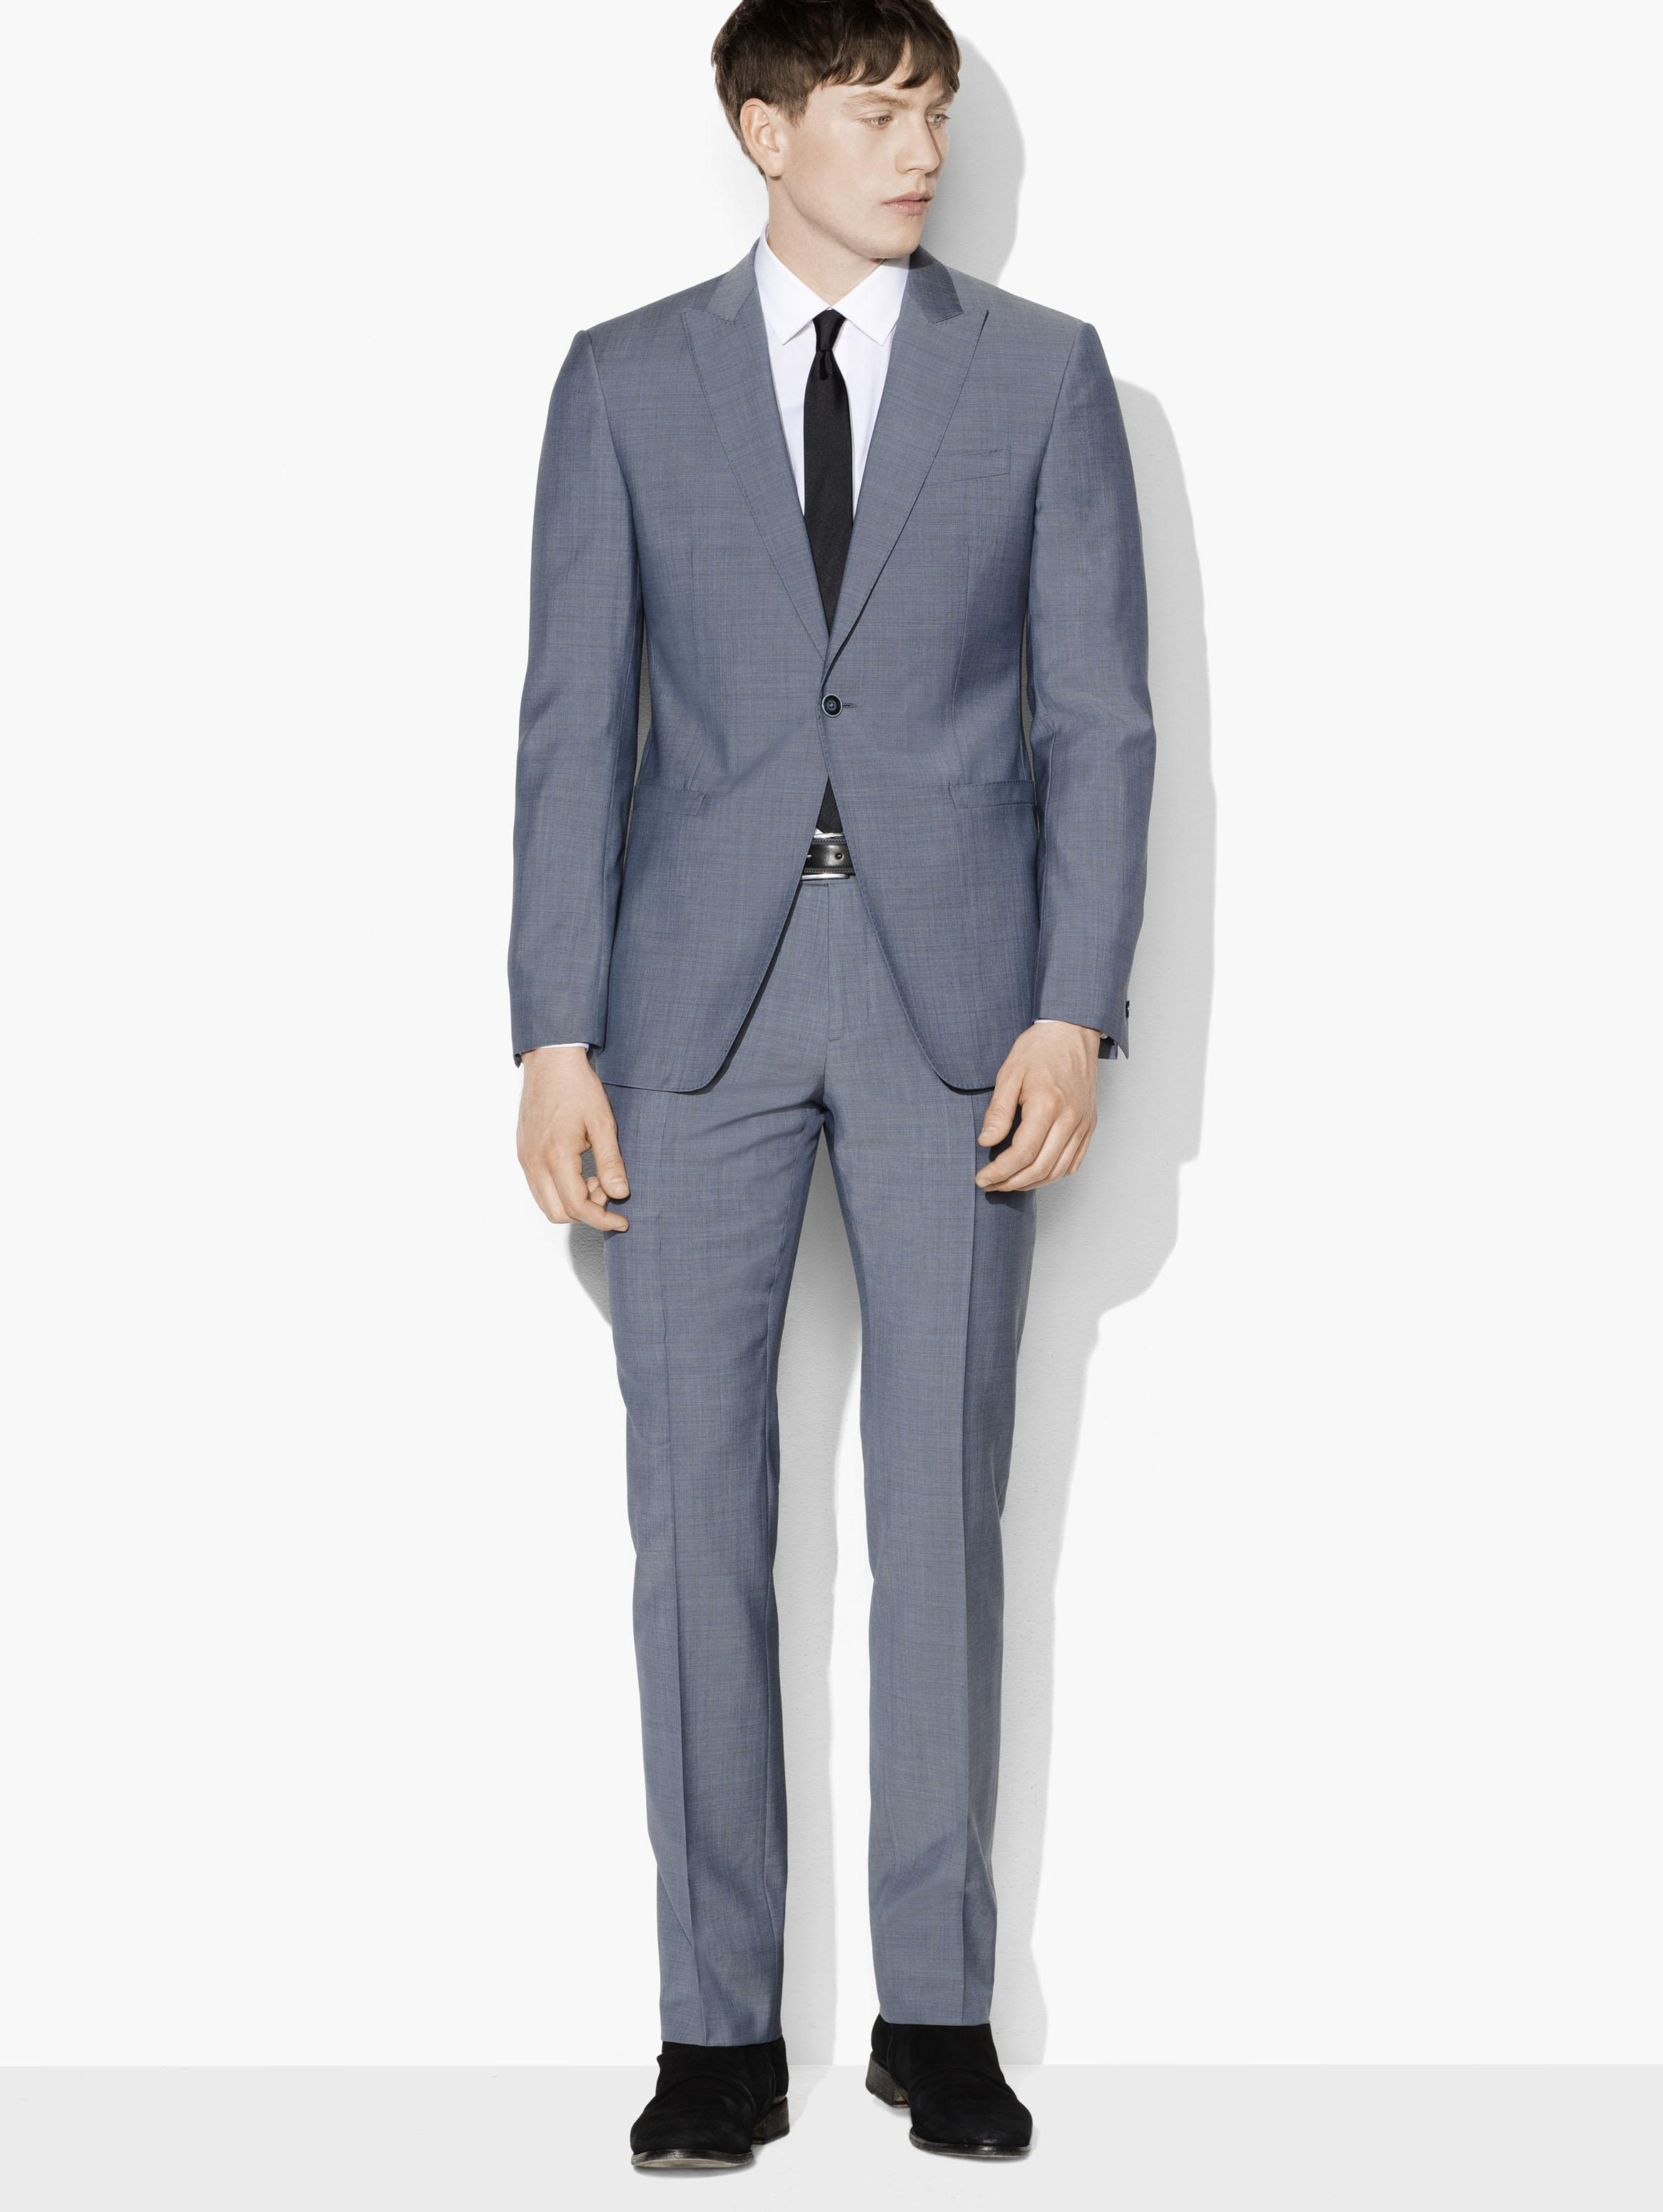 Jake Dynamic Weave Suit